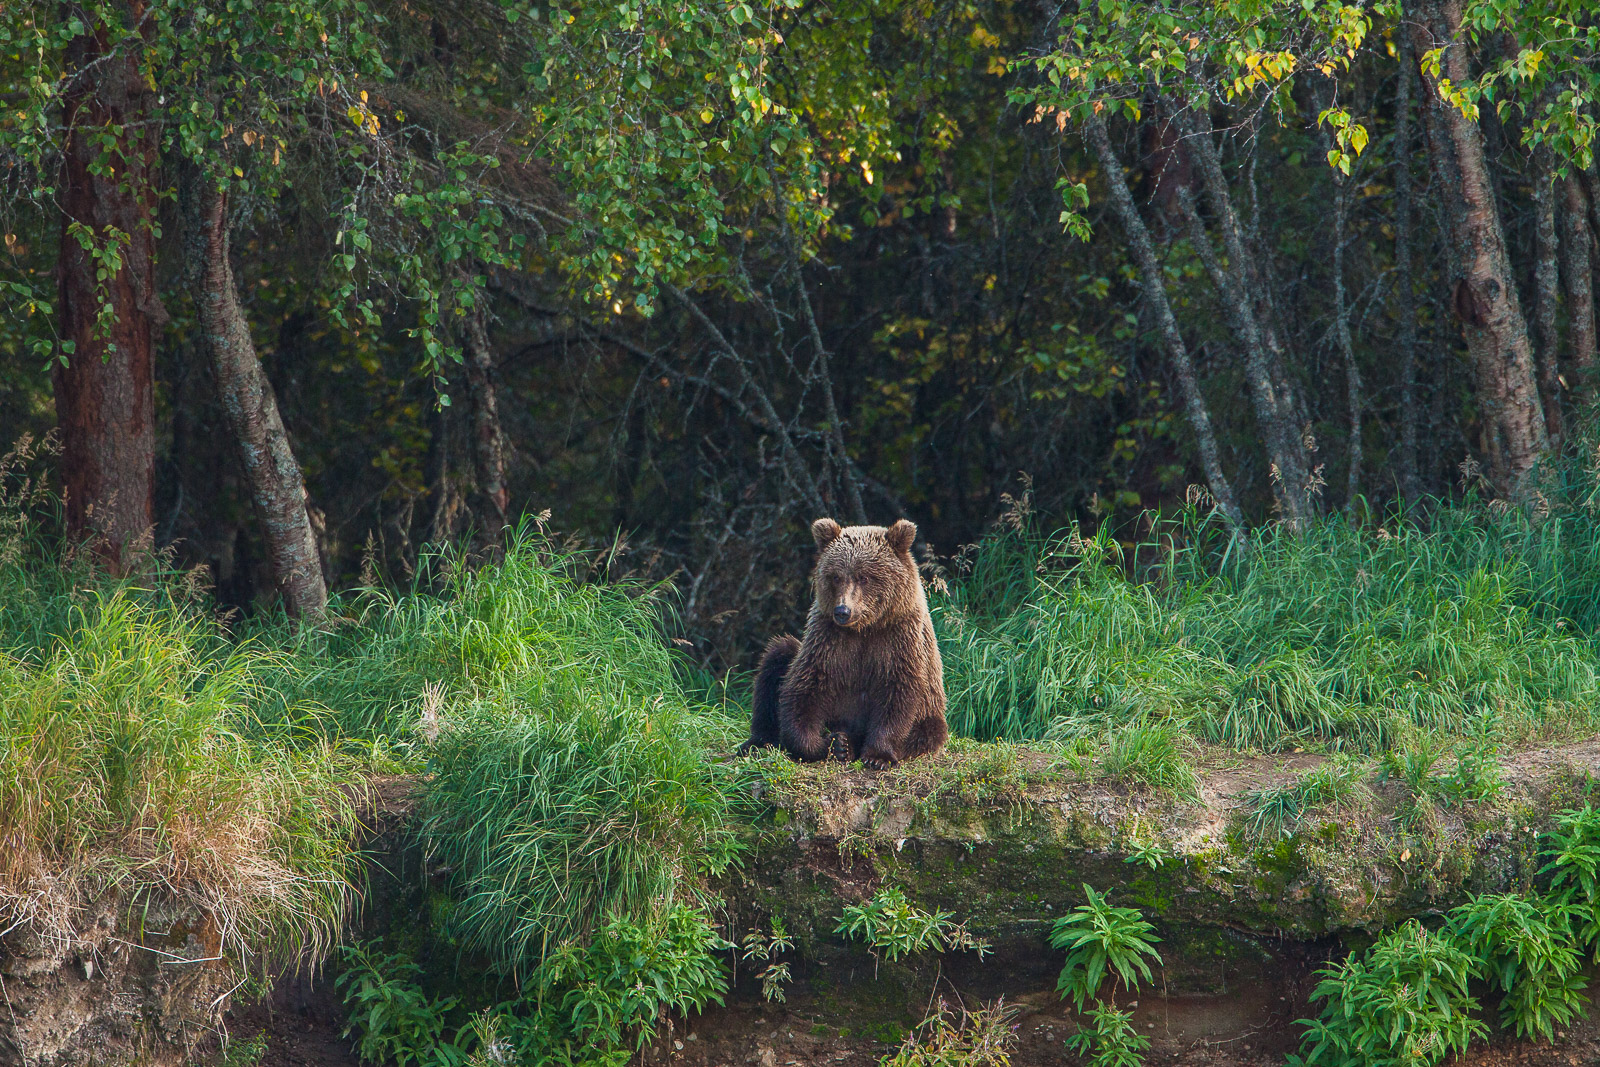 Having a Sit,Cub,Fall,Grizzly,Wildlife,river,water,katmai national park,trees,green,horizontal, bear, photo